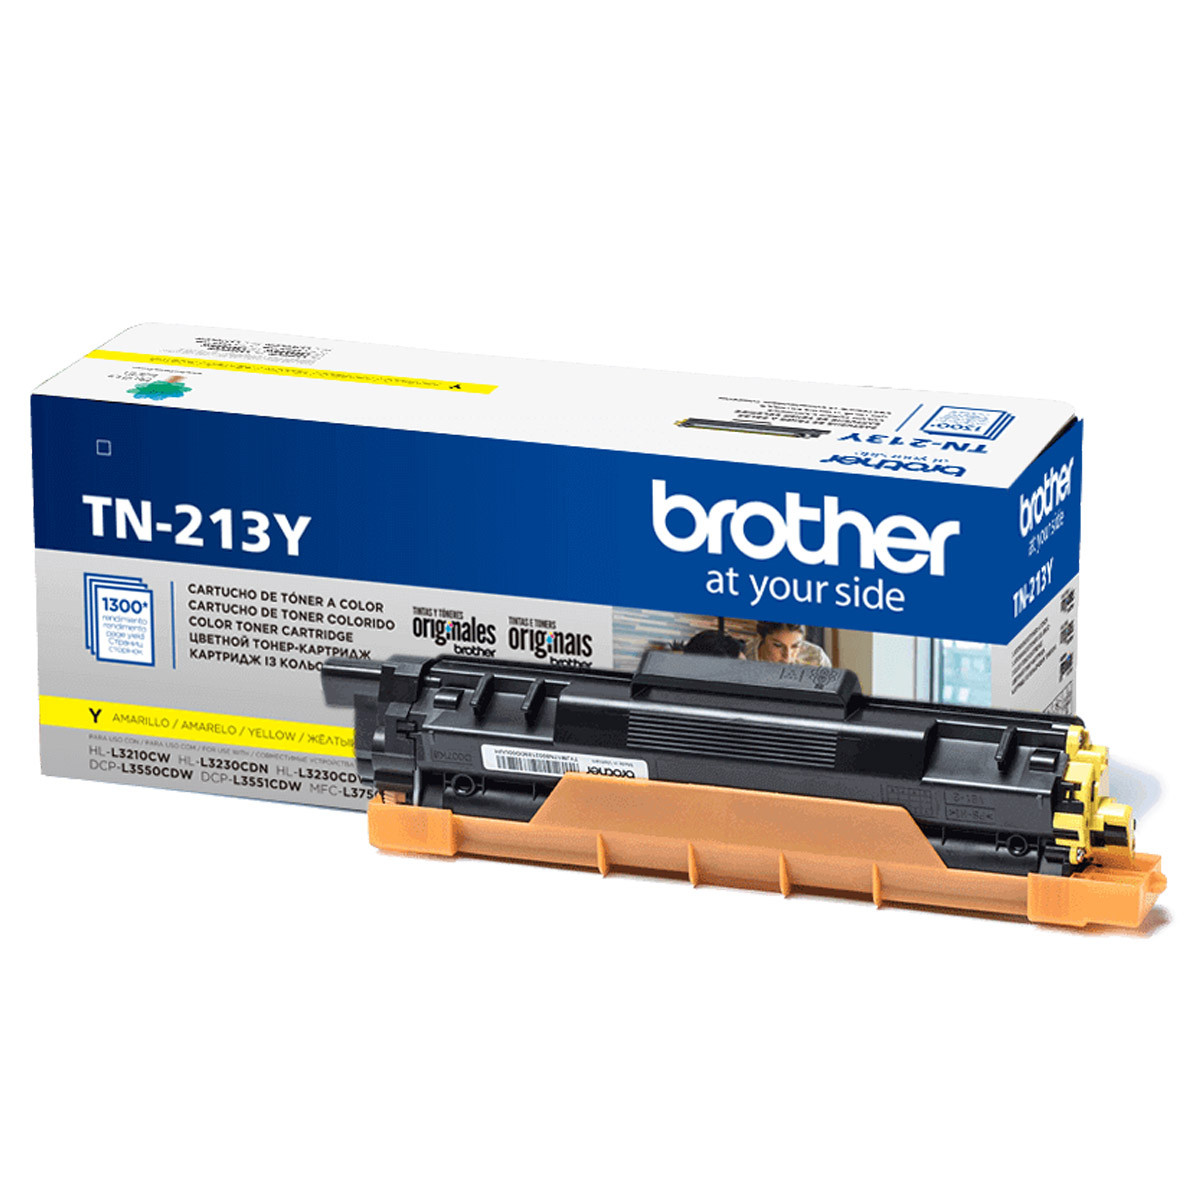 Toner Brother TN-213Y TN-213 Amarelo | MFC-L3750CDW L3750CDW L3750 | Original 1.3K